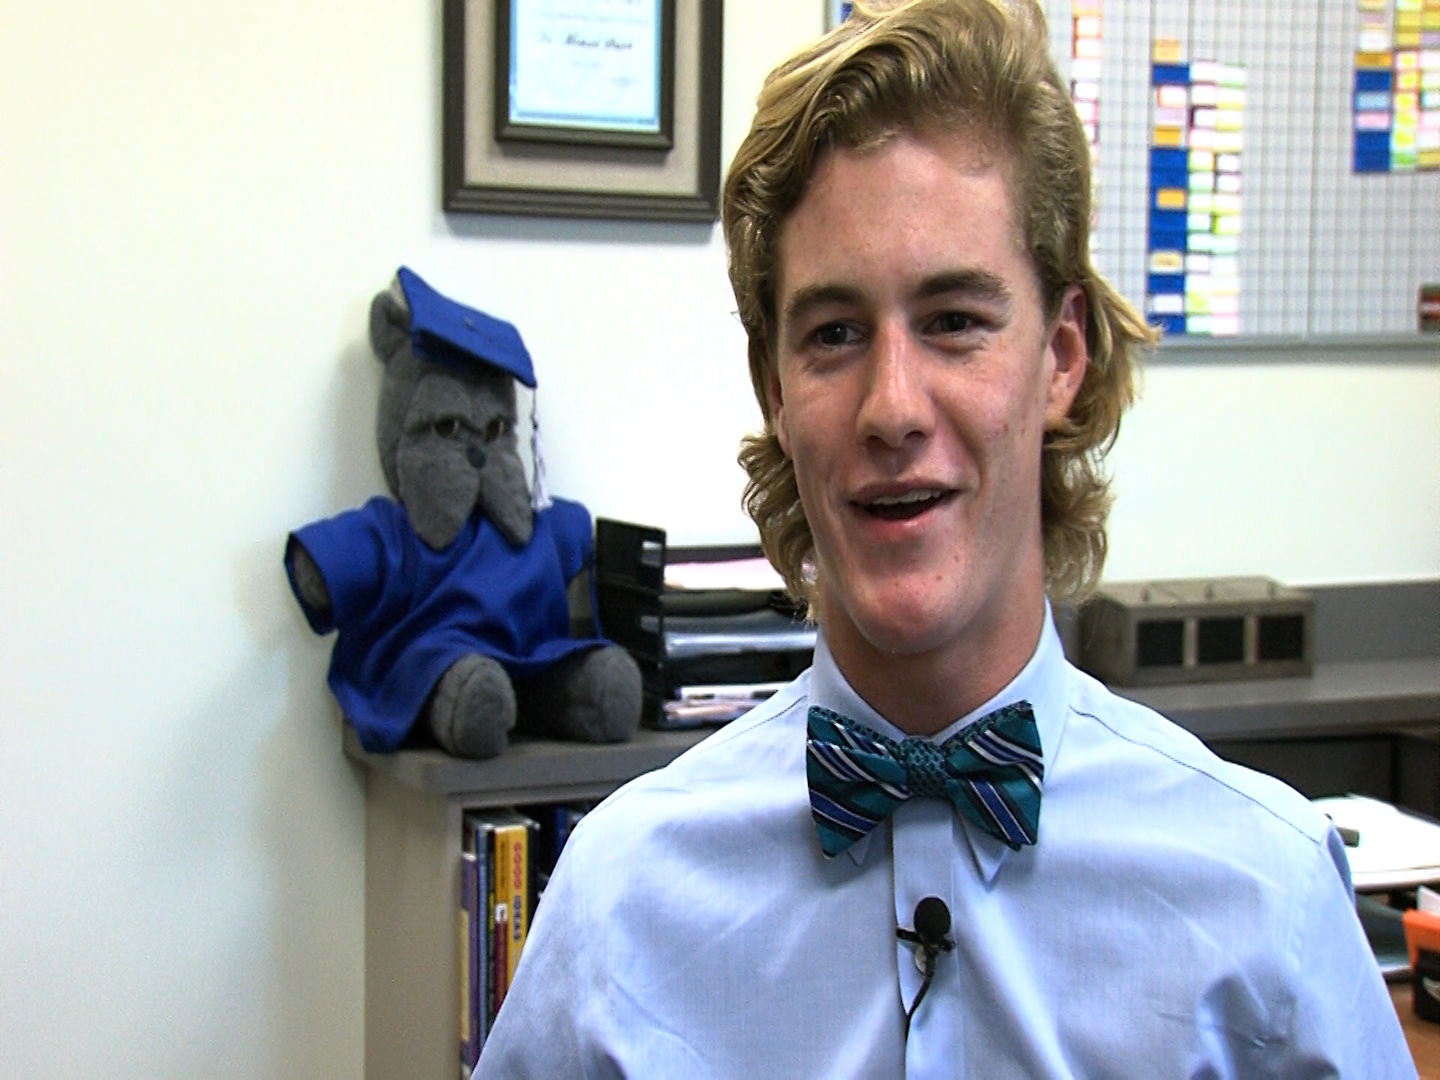 WBOC/Mountaire Farms November Scholar Athlete of the Month – Connor McCormick, North Caroline